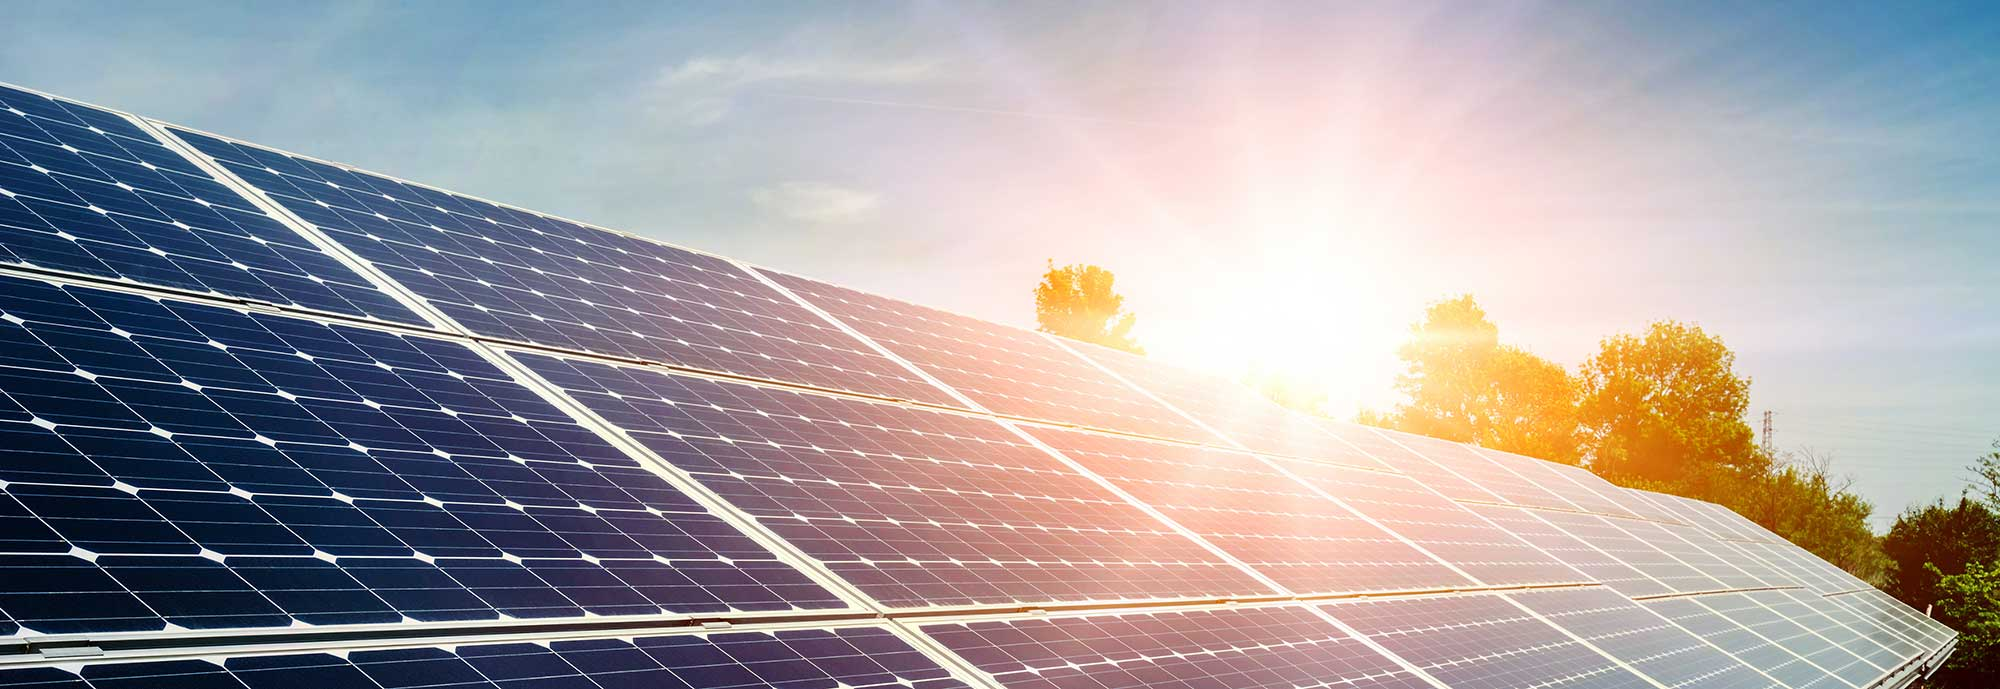 Skyline Clean Energy Fund Acquires 299 Kilowatt (kW) Solar Energy System